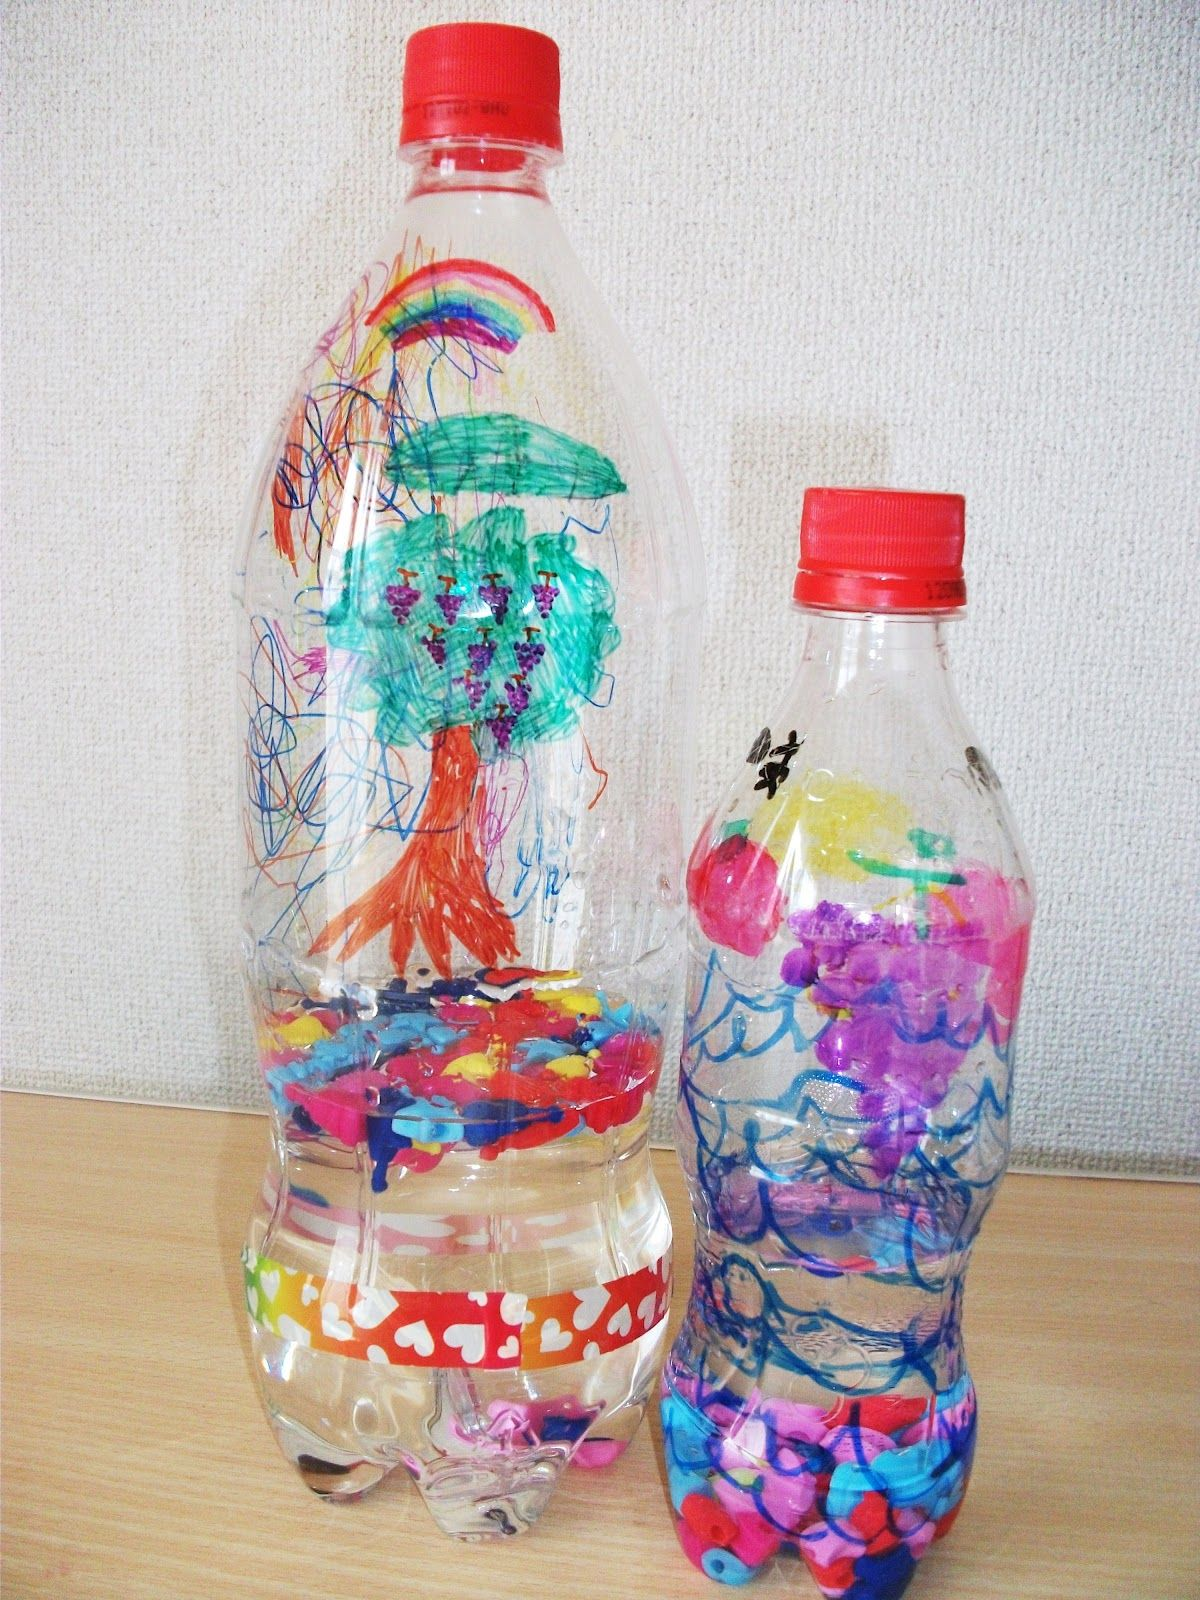 Amazing Water Bottle Craft Ideas For Kids Part - 7: Hereu0026 A Colorful And Quieter Variation On The Typical Bead Bottle Shaker  Craft. Add Water To Make A Water Bottle Shaker Craft.